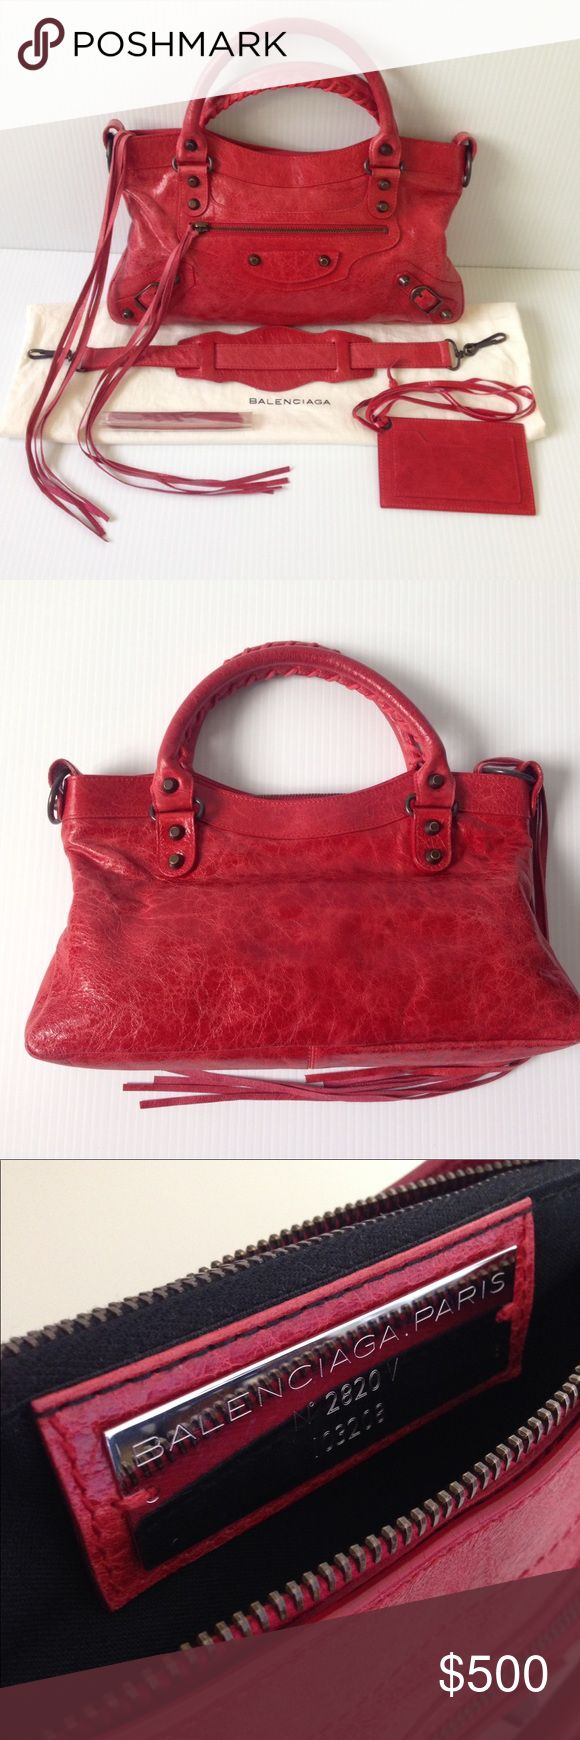 """Balenciaga Classic First bag Gorgeous Balenciaga First Bag in distressed bright red leather with incredible classic stud and tassel details comes with a matching mirror, spare tassels, a detachable shoulder strap and a dust bag. Dimension: 7 1/2""""H x 13""""W x 2 1/2""""D. Made in Italy. The exterior leather is clean. Light wear on handles. Minor scuff at bottom corners. Wax edges start to wear off in some areas. The interior lining is clean and in good condition. Hardware shows some light…"""